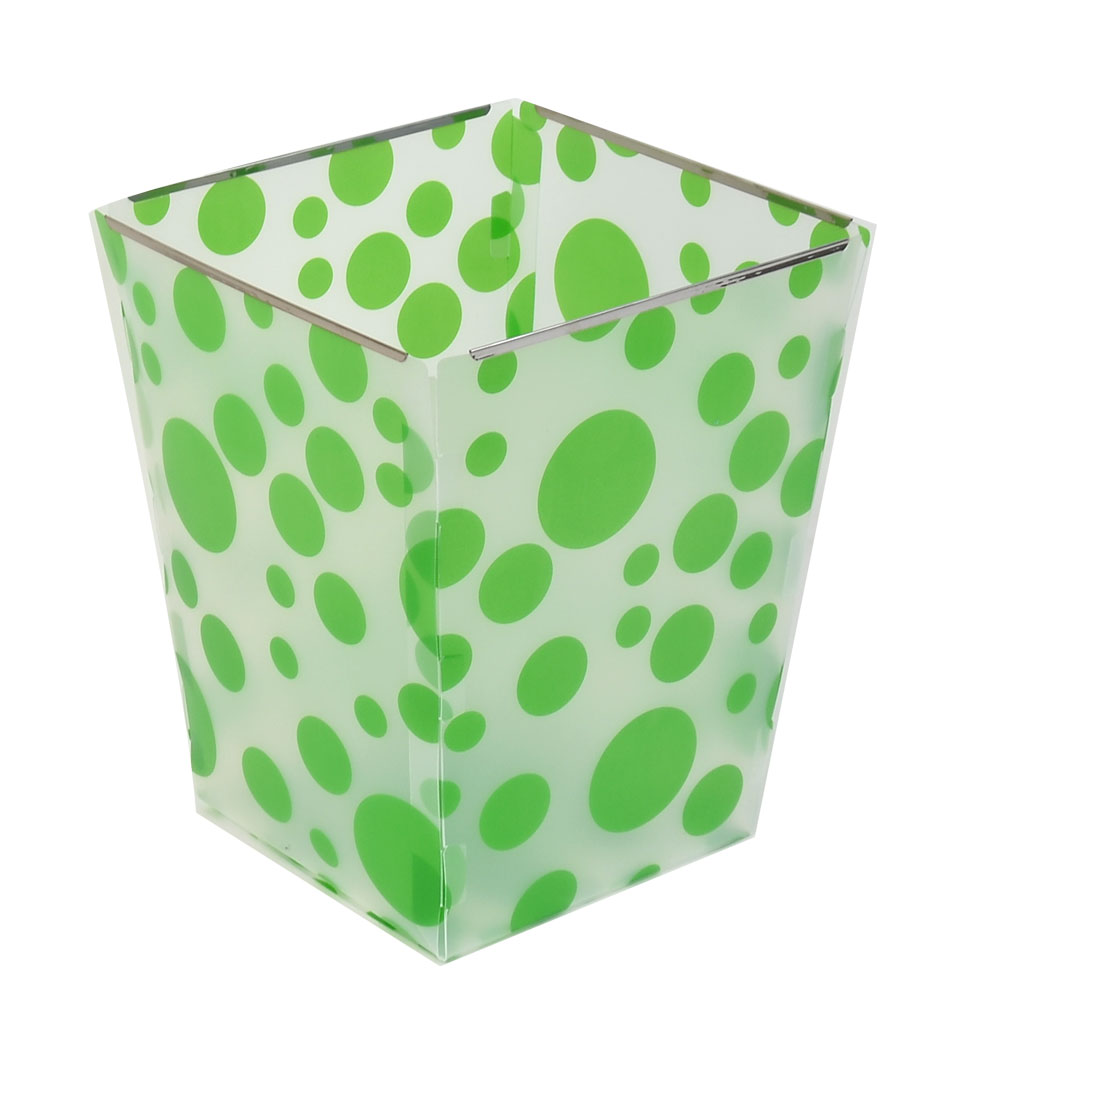 Foldable Paper Waste Bin Bucket Garbage DIY Can Container Clear White Green